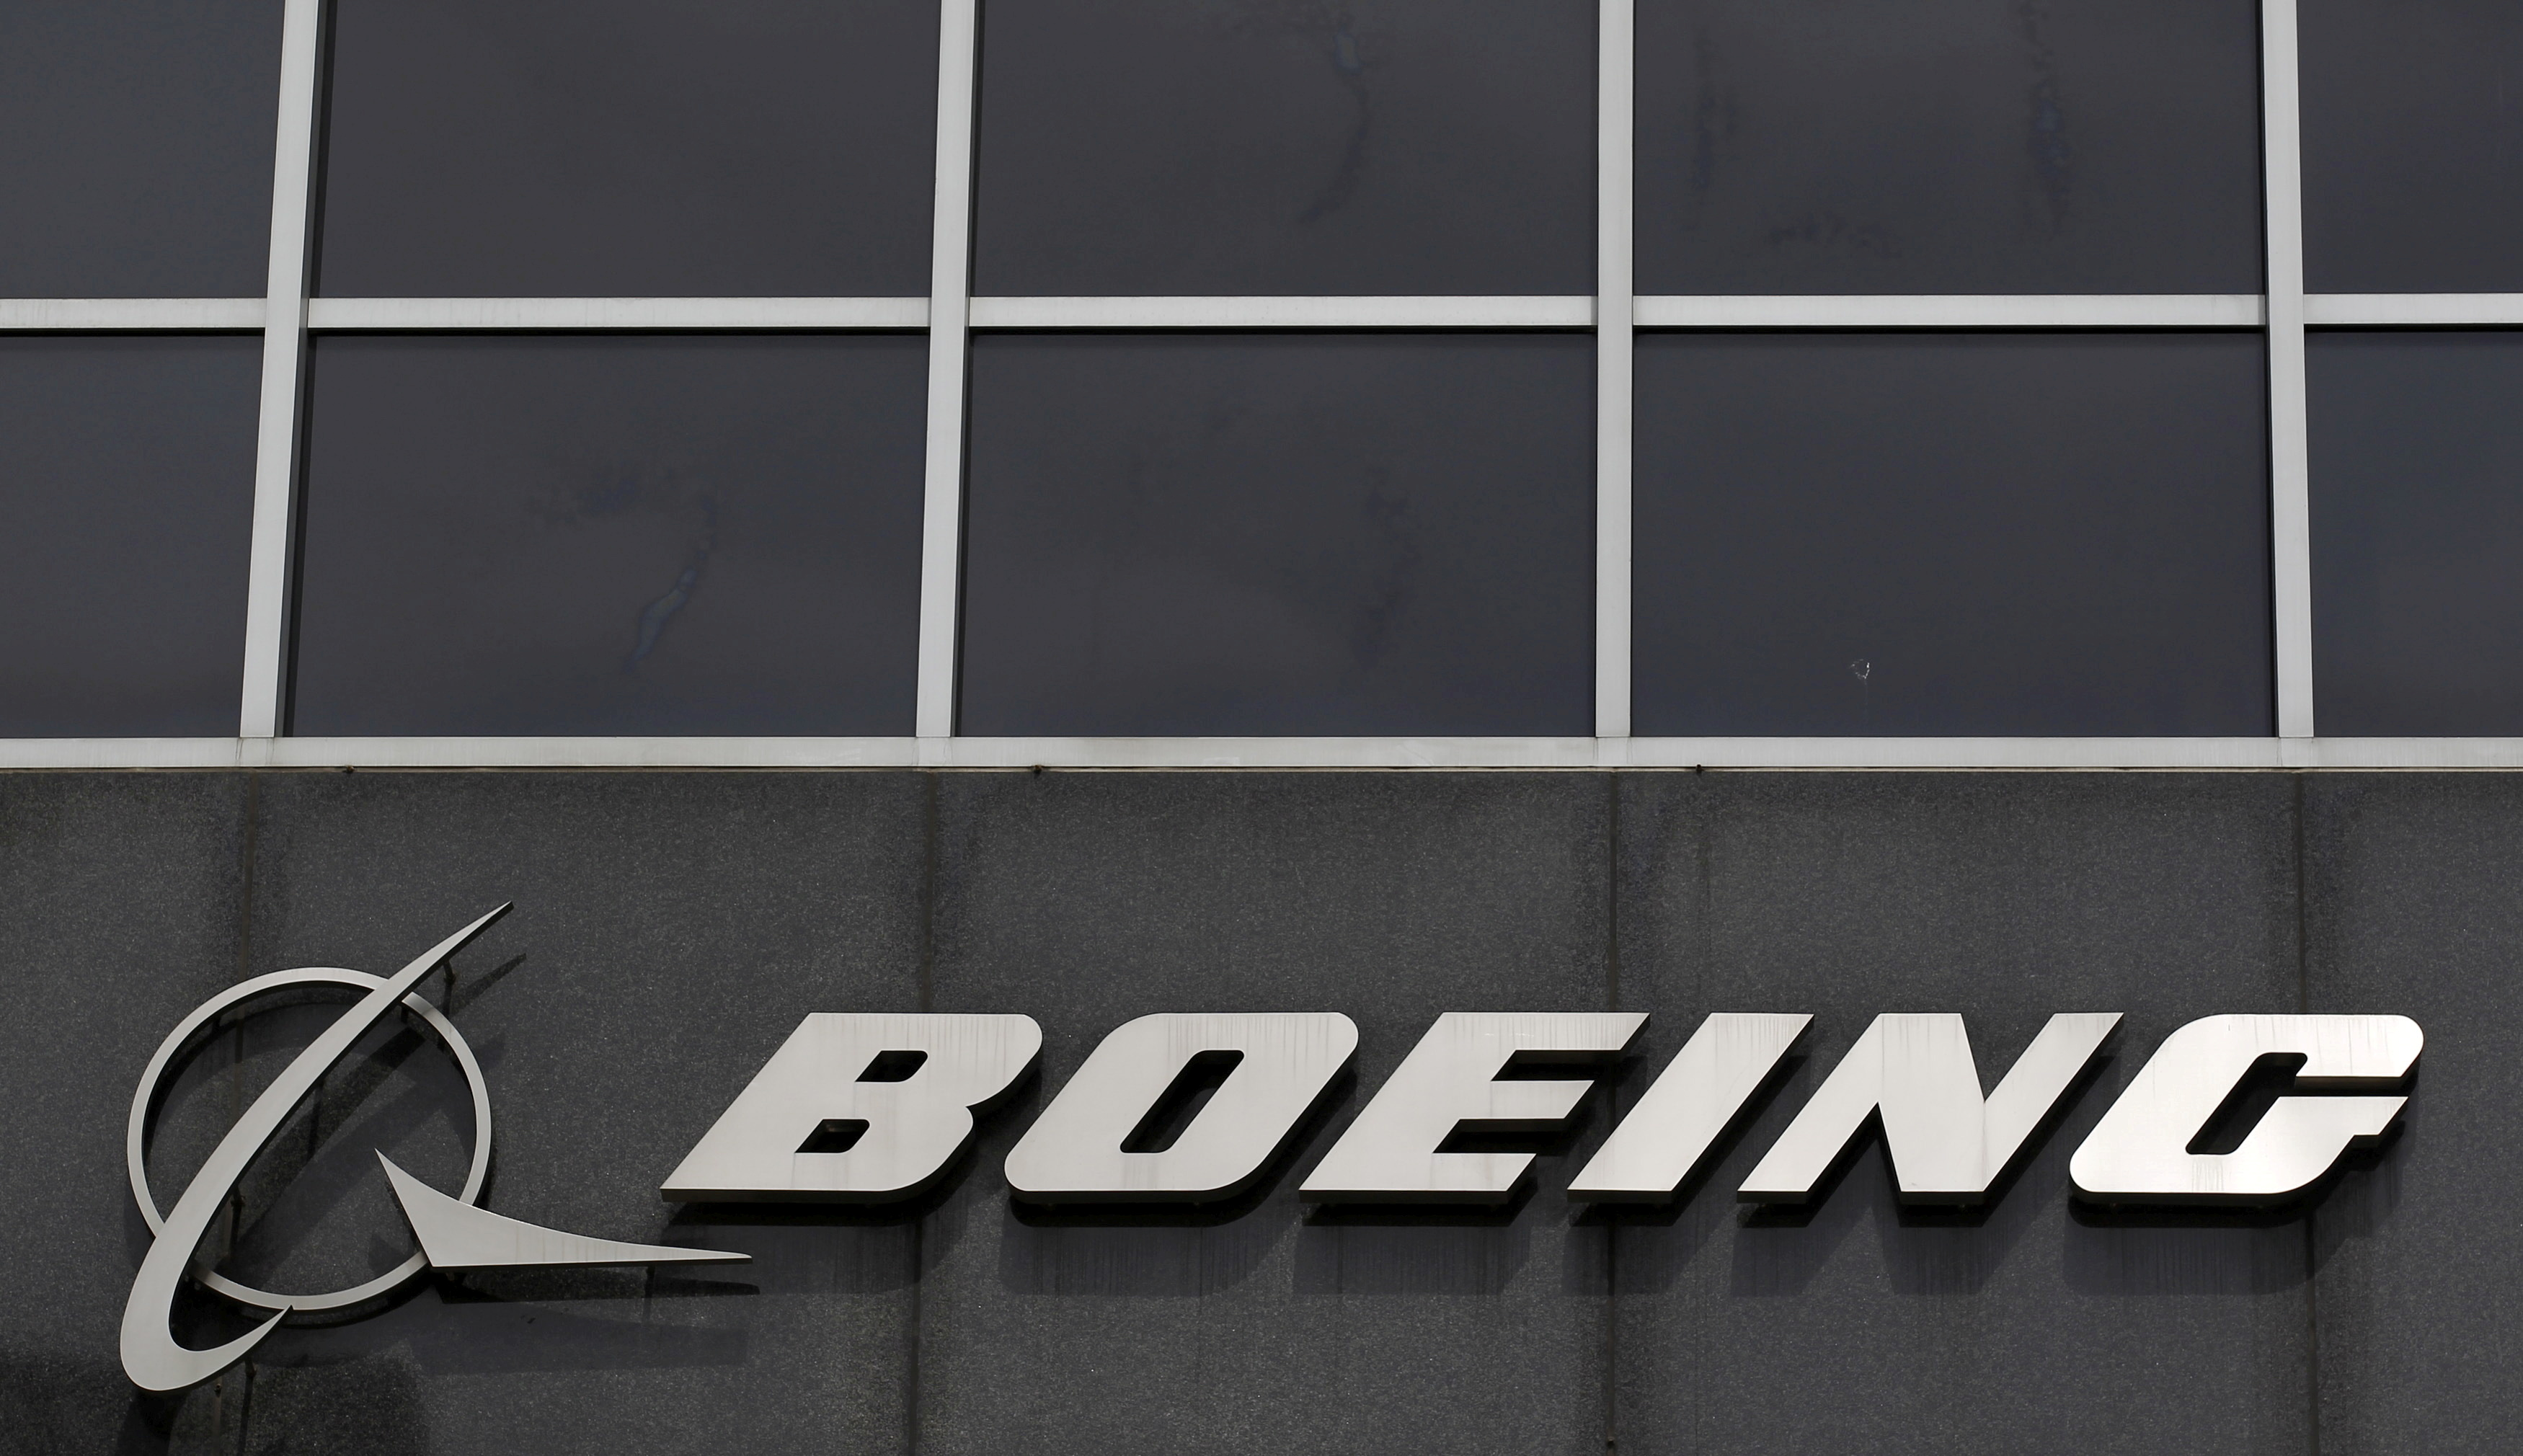 The Boeing logo is seen at their headquarters in Chicago, in this April 24, 2013 photo. REUTERS/Jim Young/File Photo